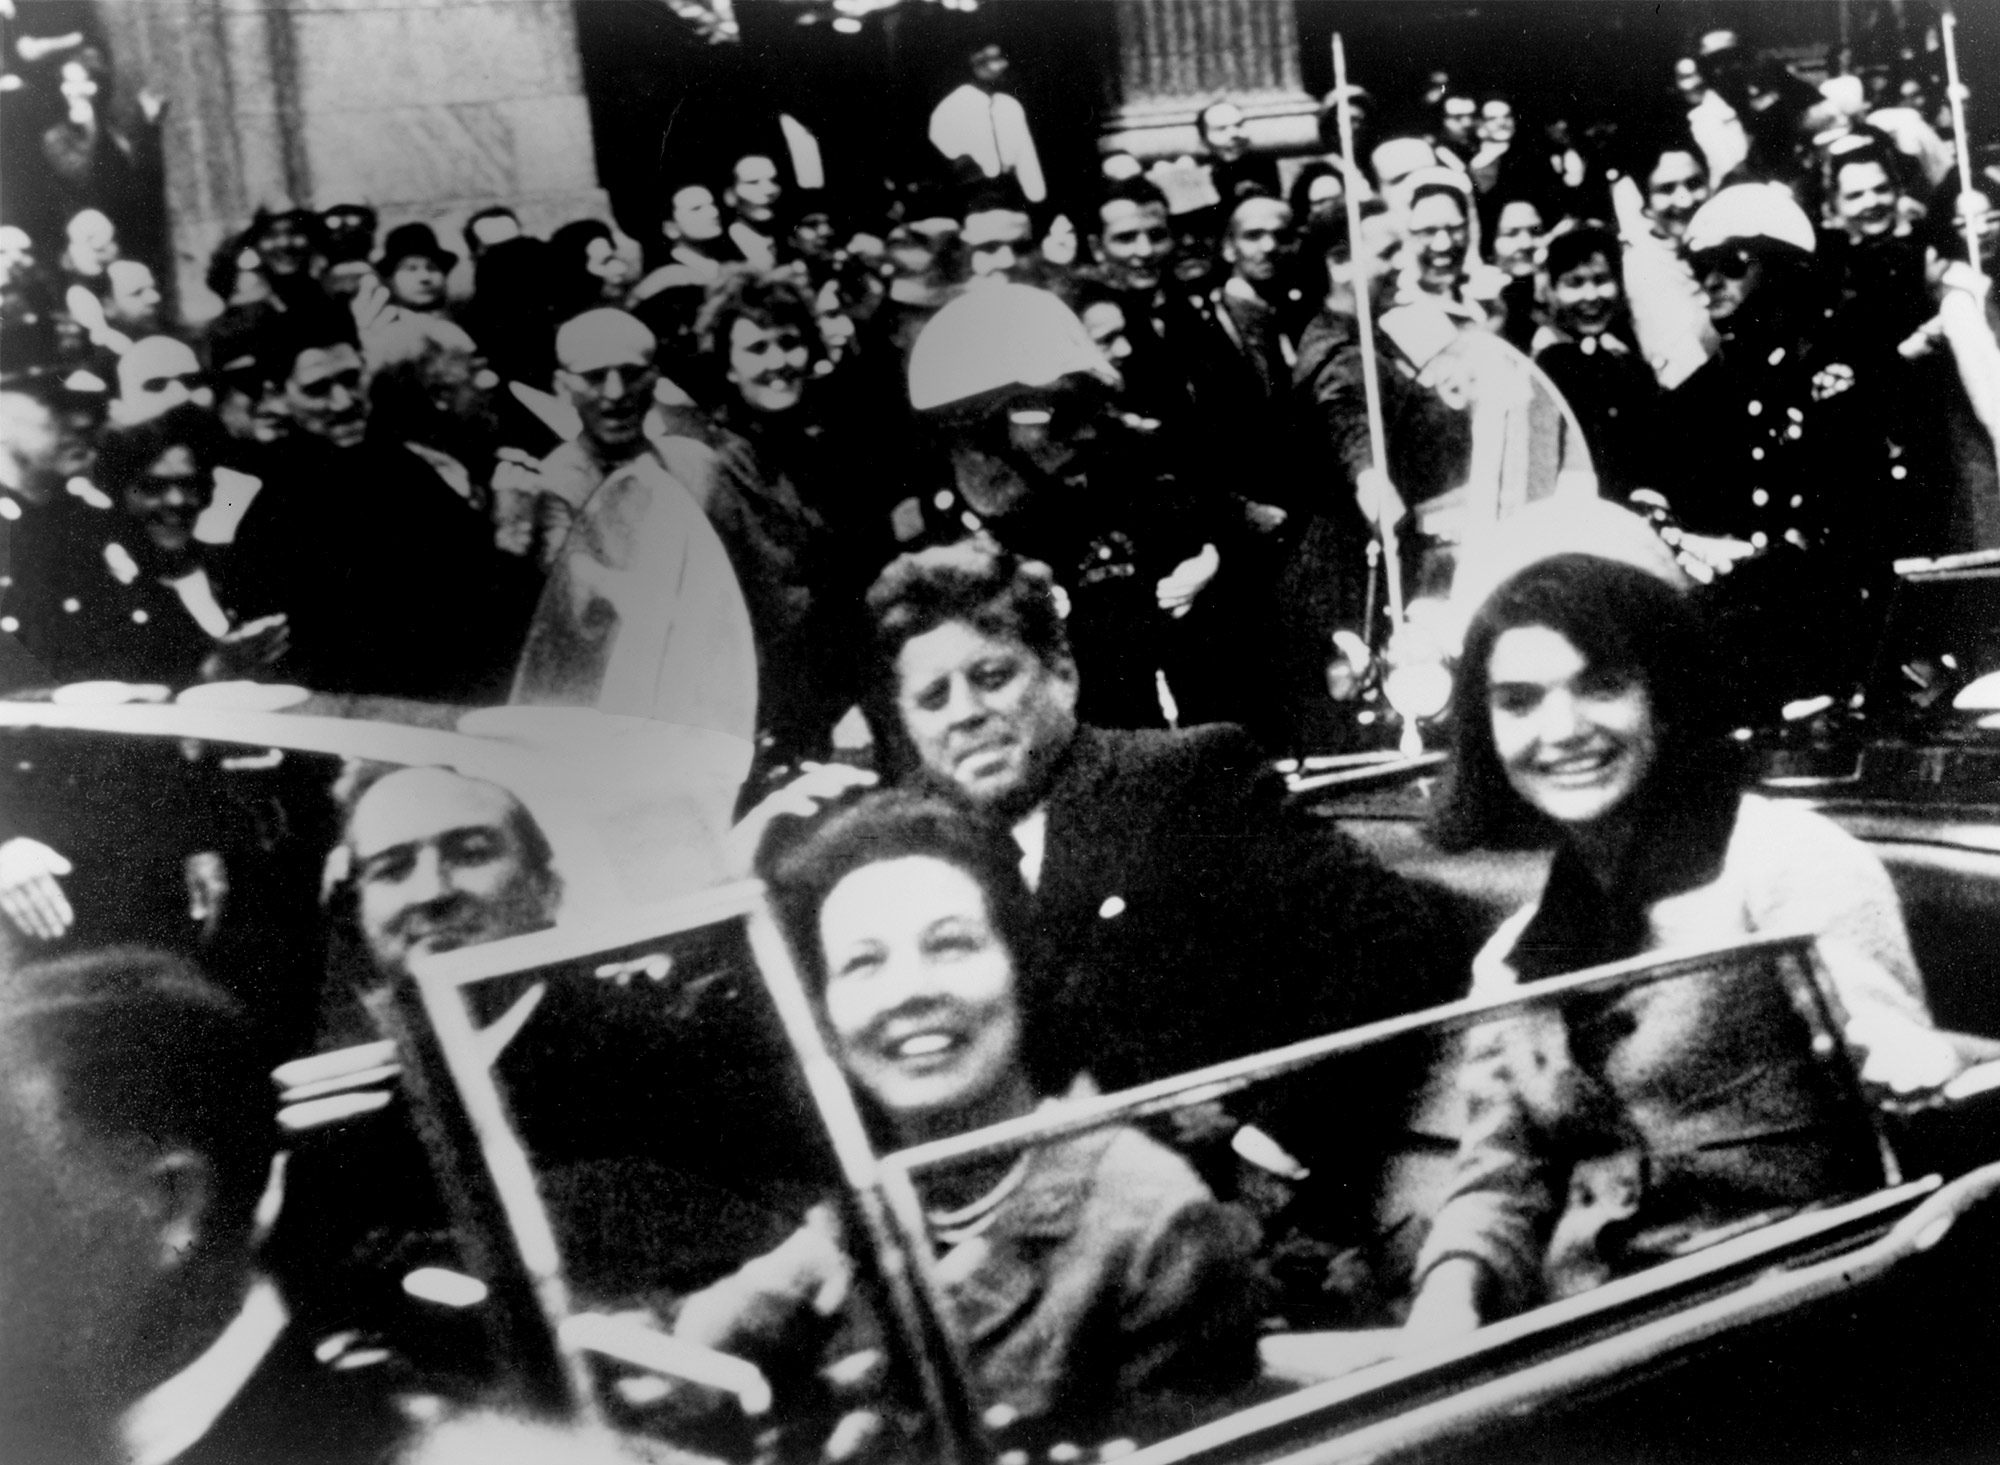 President John Kennedy and Jacqueline Kennedy ride with Texas Gov. John Connally and Nellie Connally in the presidential motorcade on Nov. 22, 1963. (Victor Hugo King / Library of Congress Prints and Photographs Division)